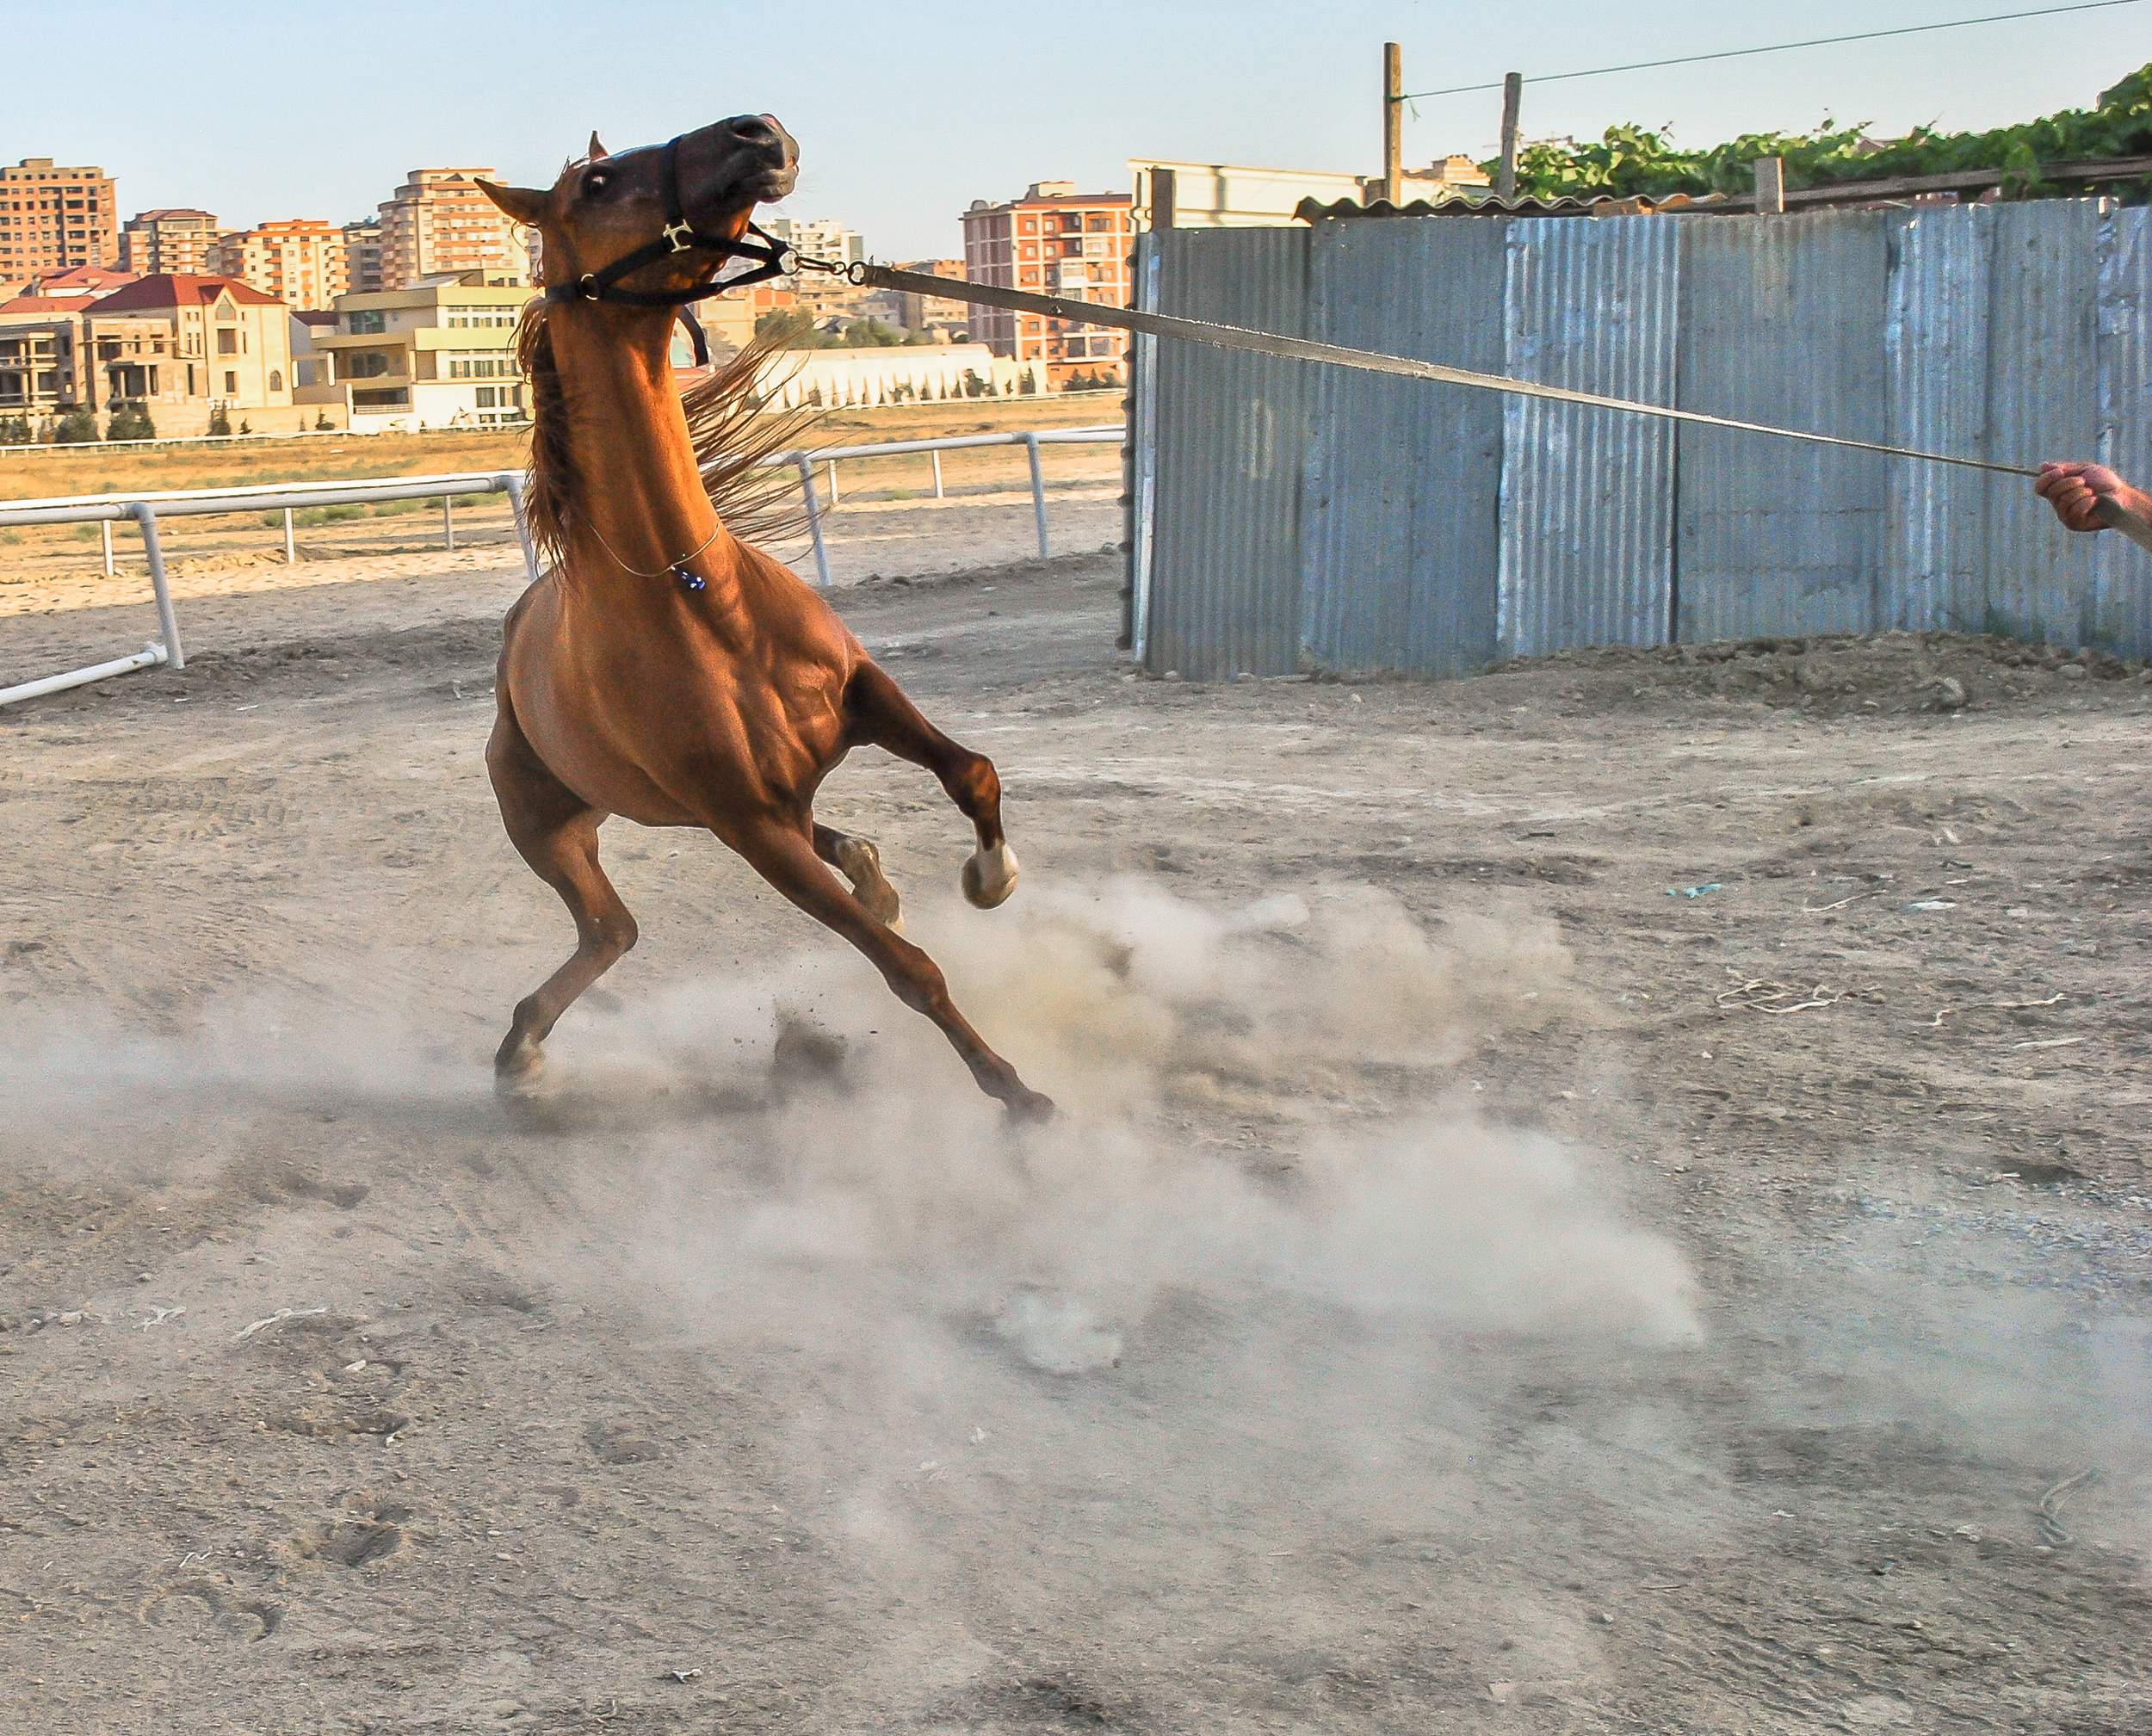 A lively example the famous breed of Karabakh horses presented by the man who rescued the breed during the shelling of Agdam during the Azerbaijan-Armenian war of the early 1990s.